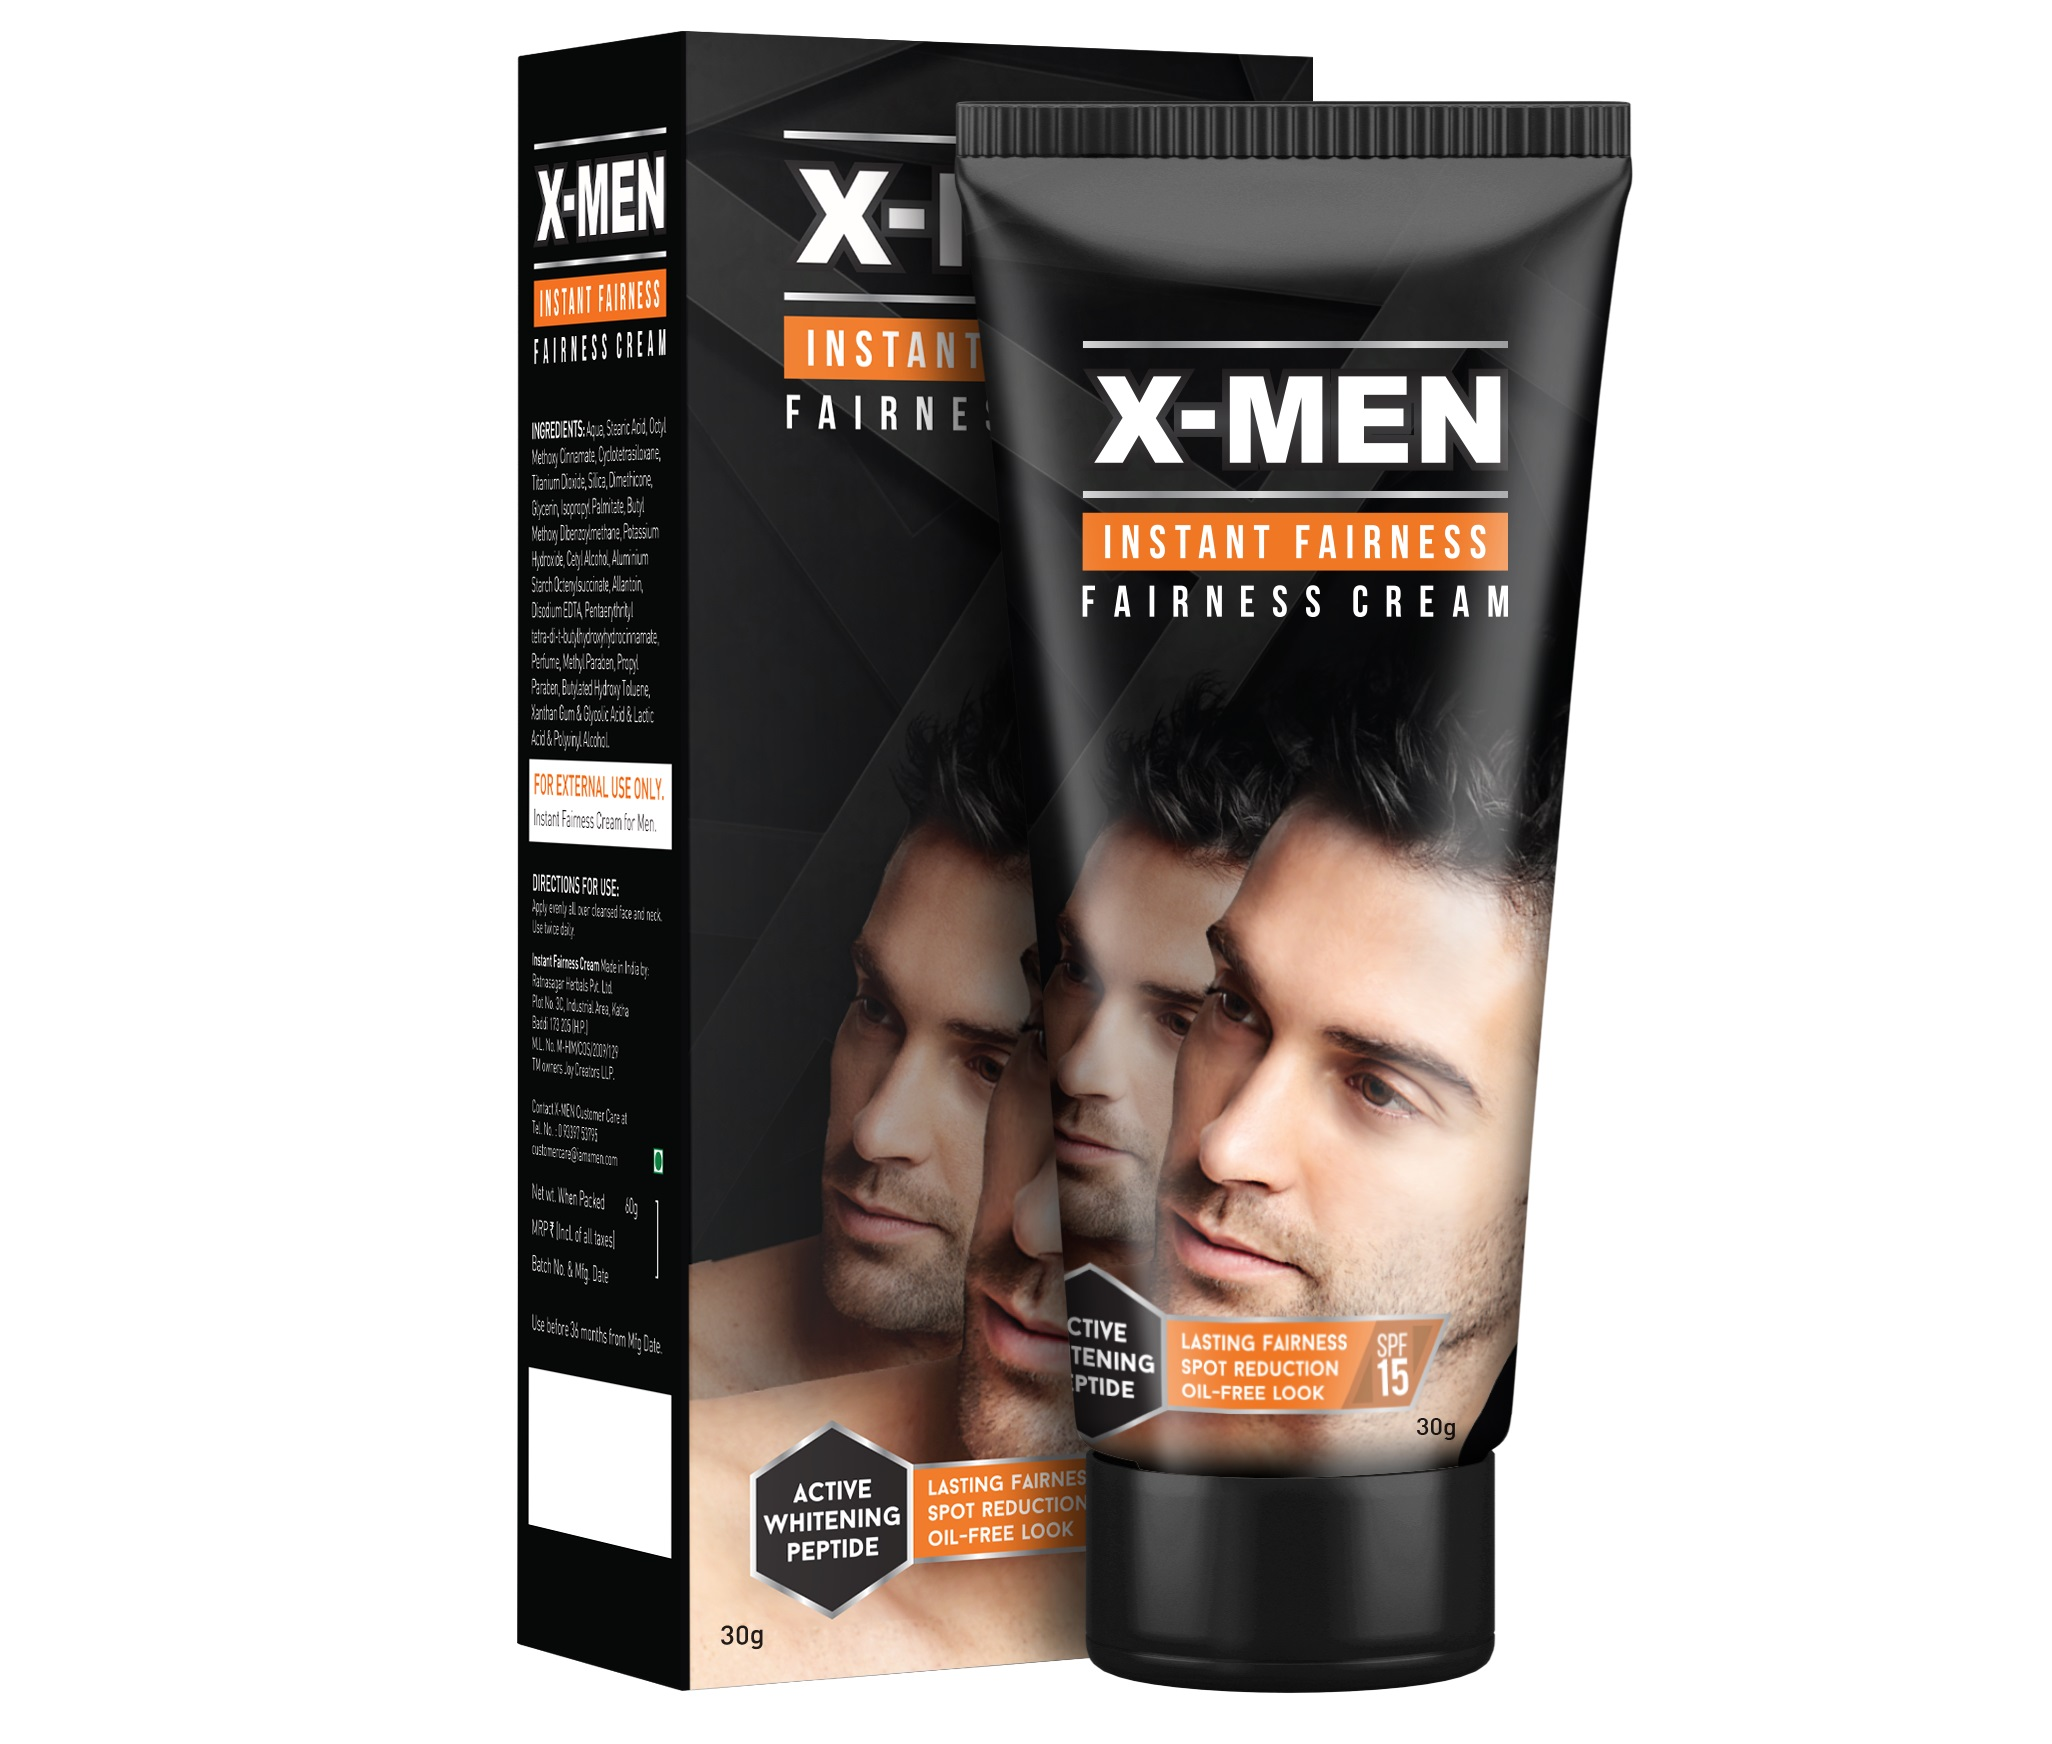 X-Men Fairness Cream